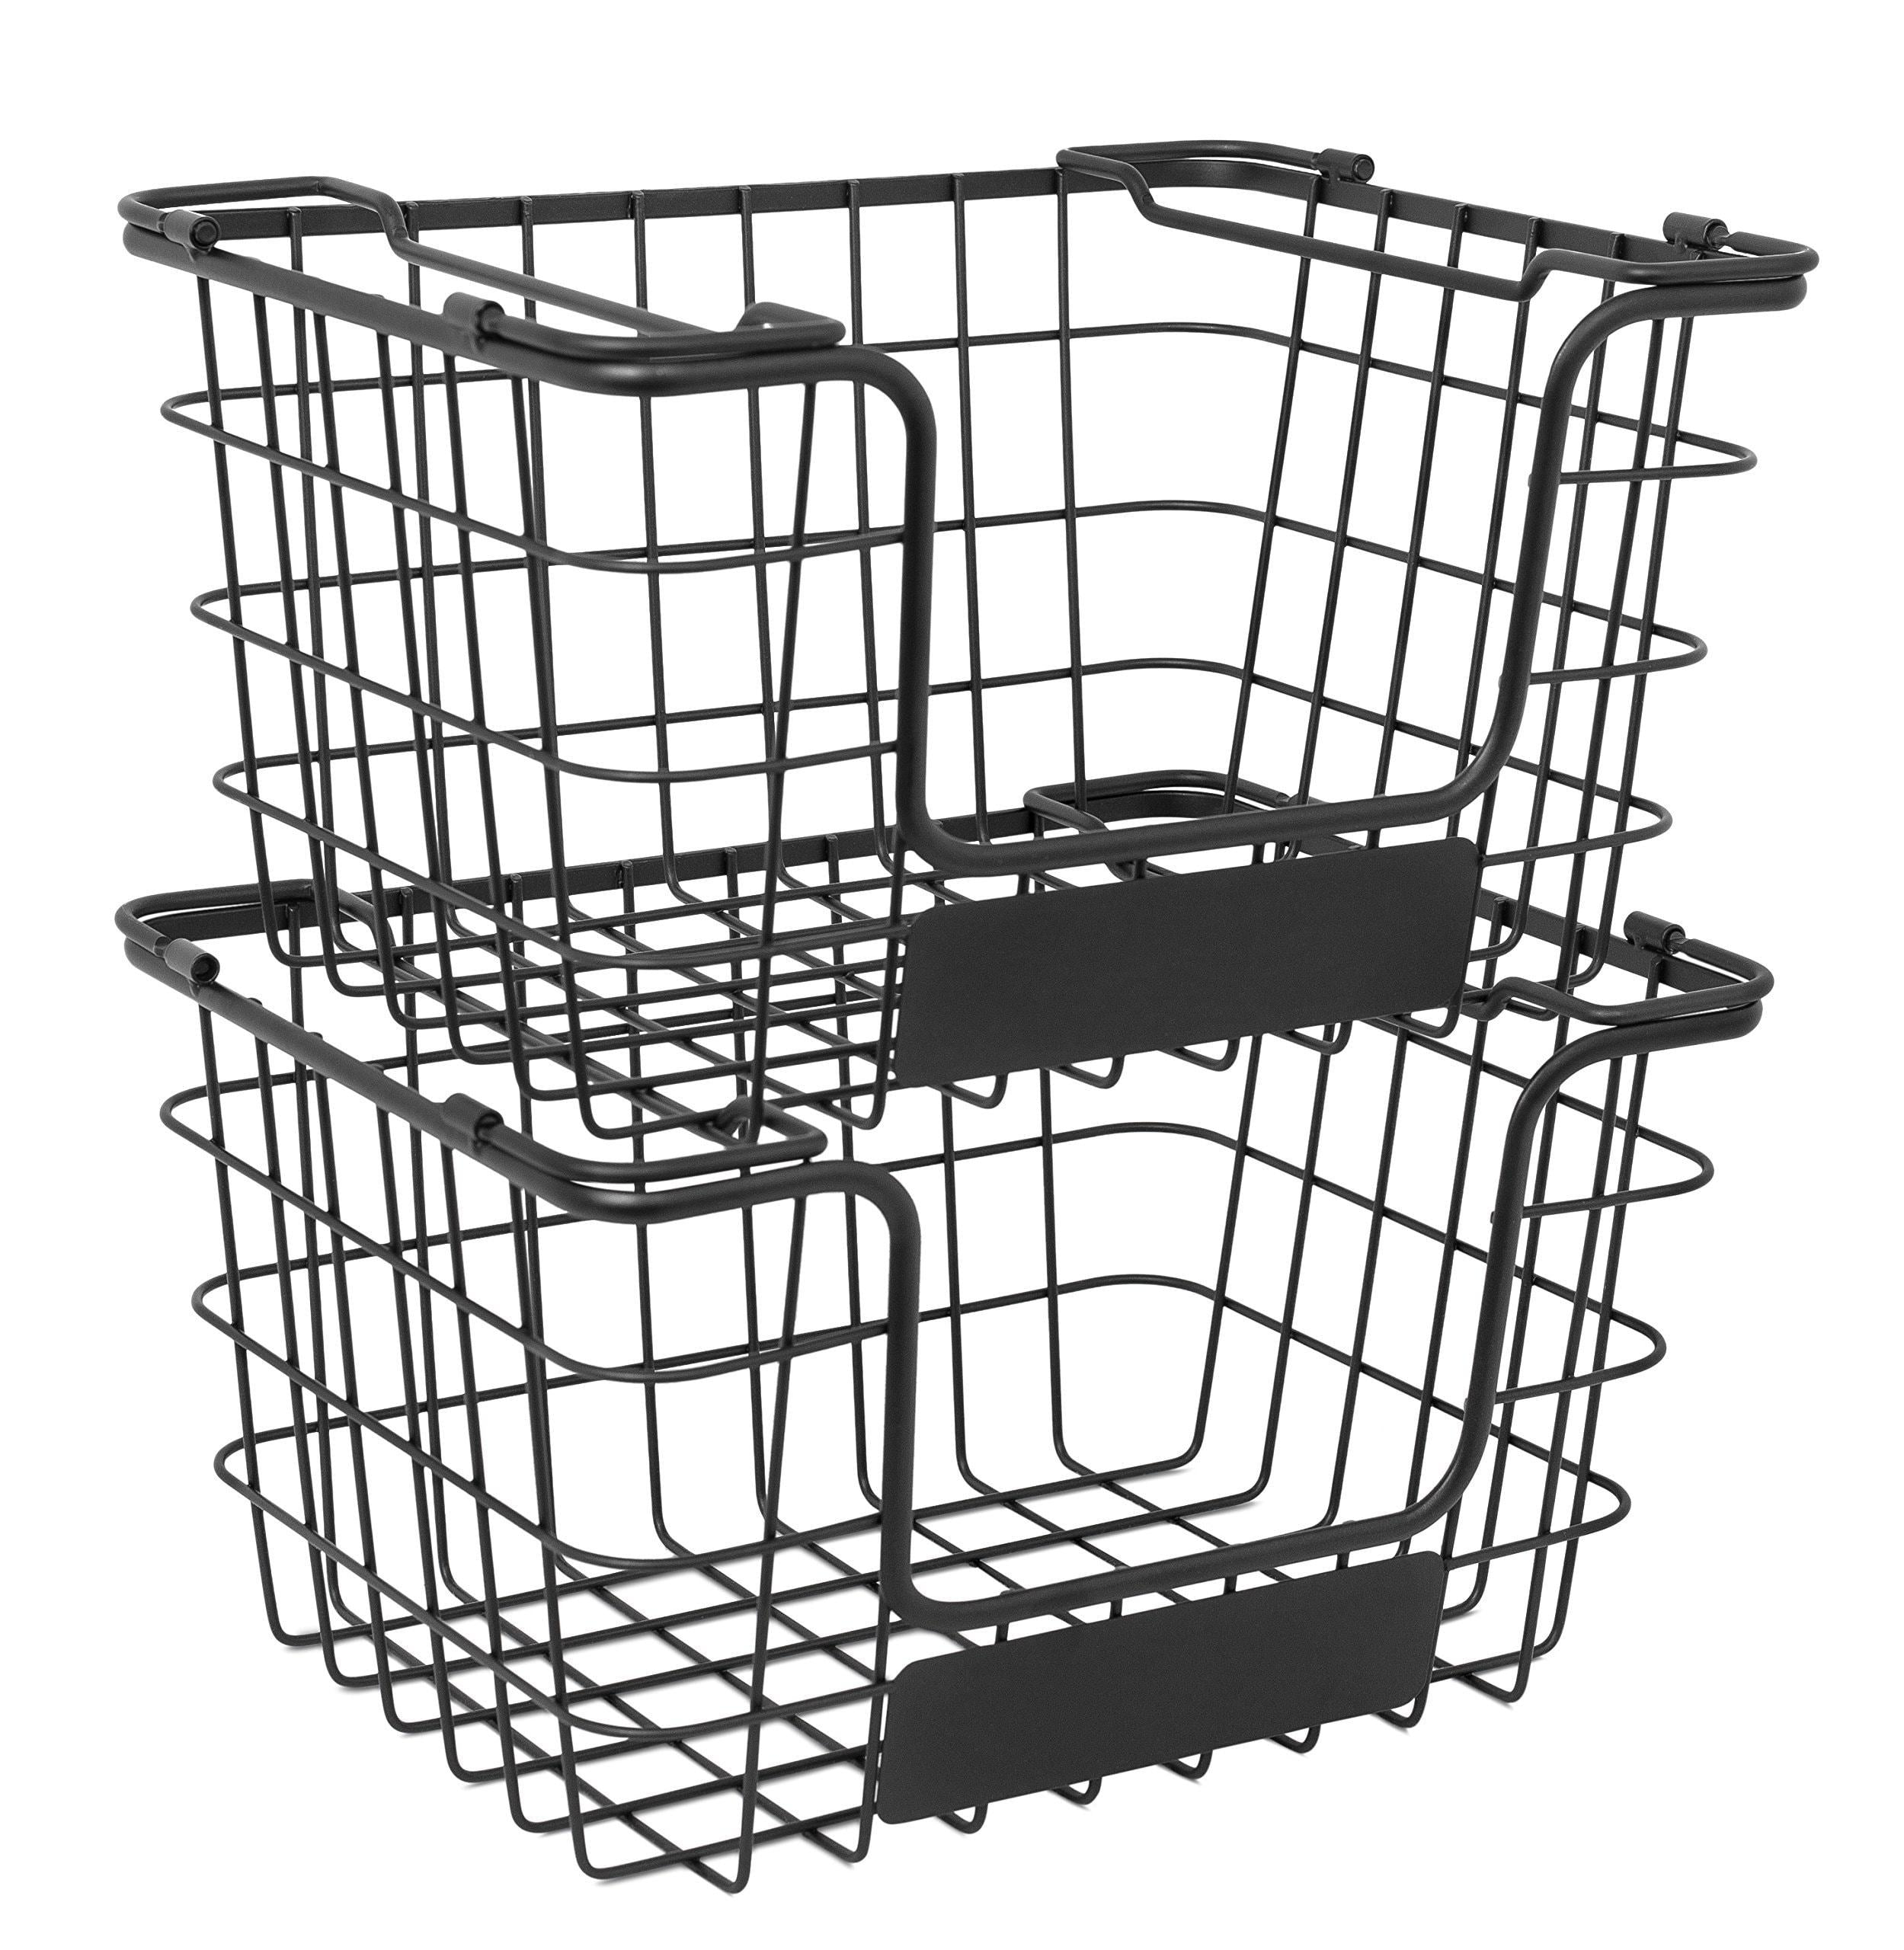 Budget birdrock home stacking wire market baskets with chalk label set of 2 fruit vegetable produce metal storage bin for kitchen counter black